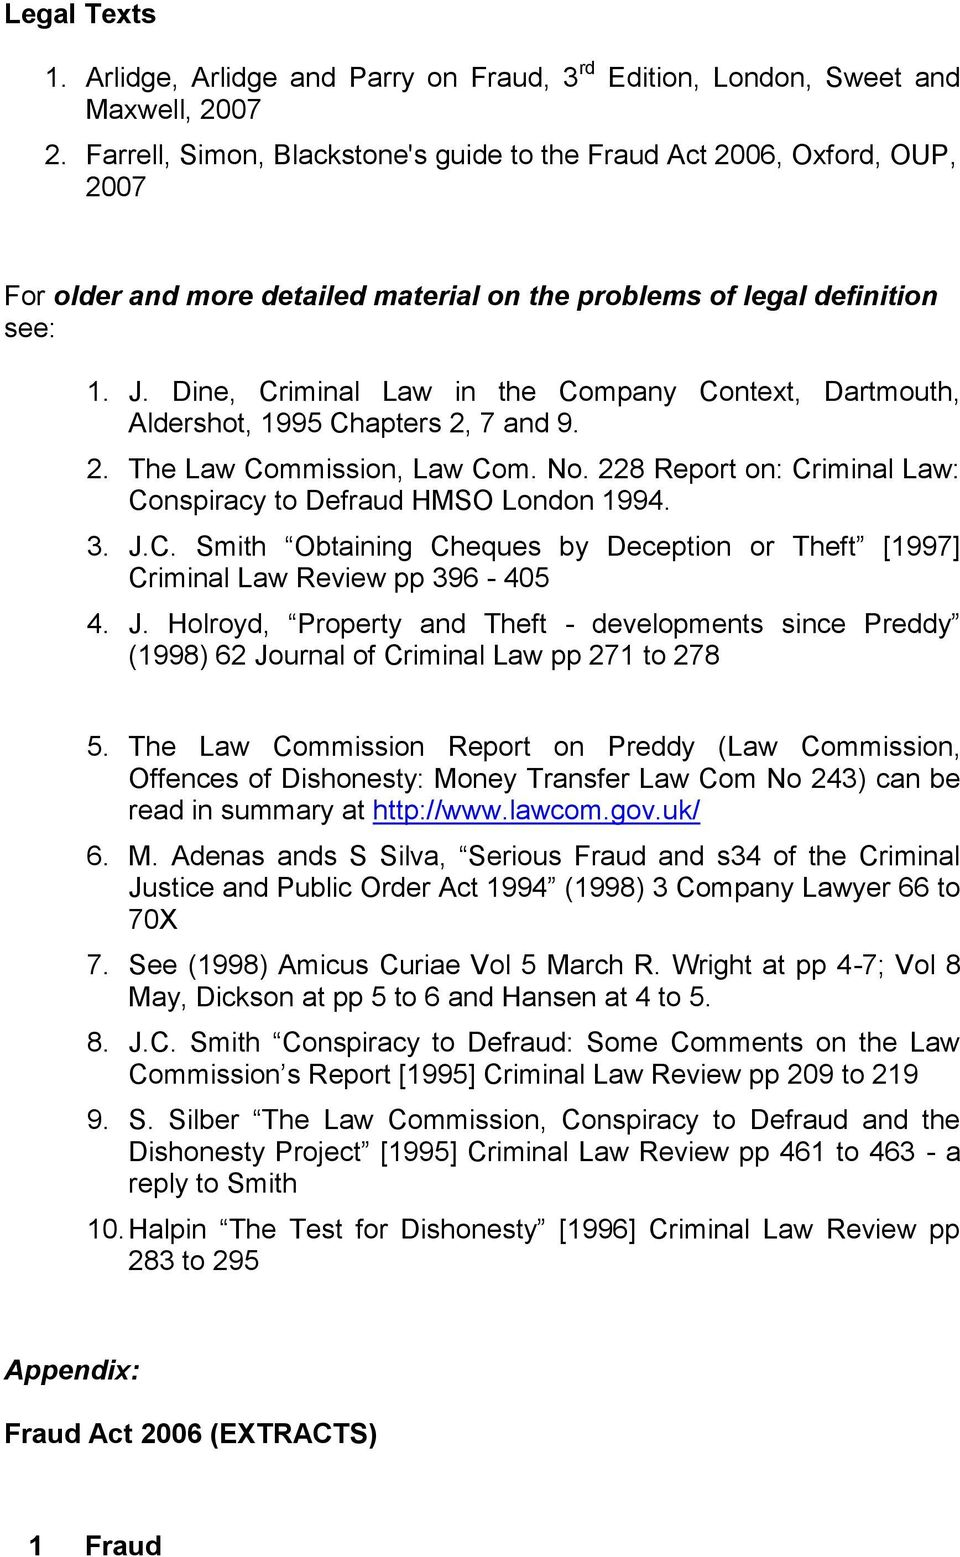 Dine, Criminal Law in the Company Context, Dartmouth, Aldershot, 1995 Chapters 2, 7 and 9. 2. The Law Commission, Law Com. No. 228 Report on: Criminal Law: Conspiracy to Defraud HMSO London 1994. 3.